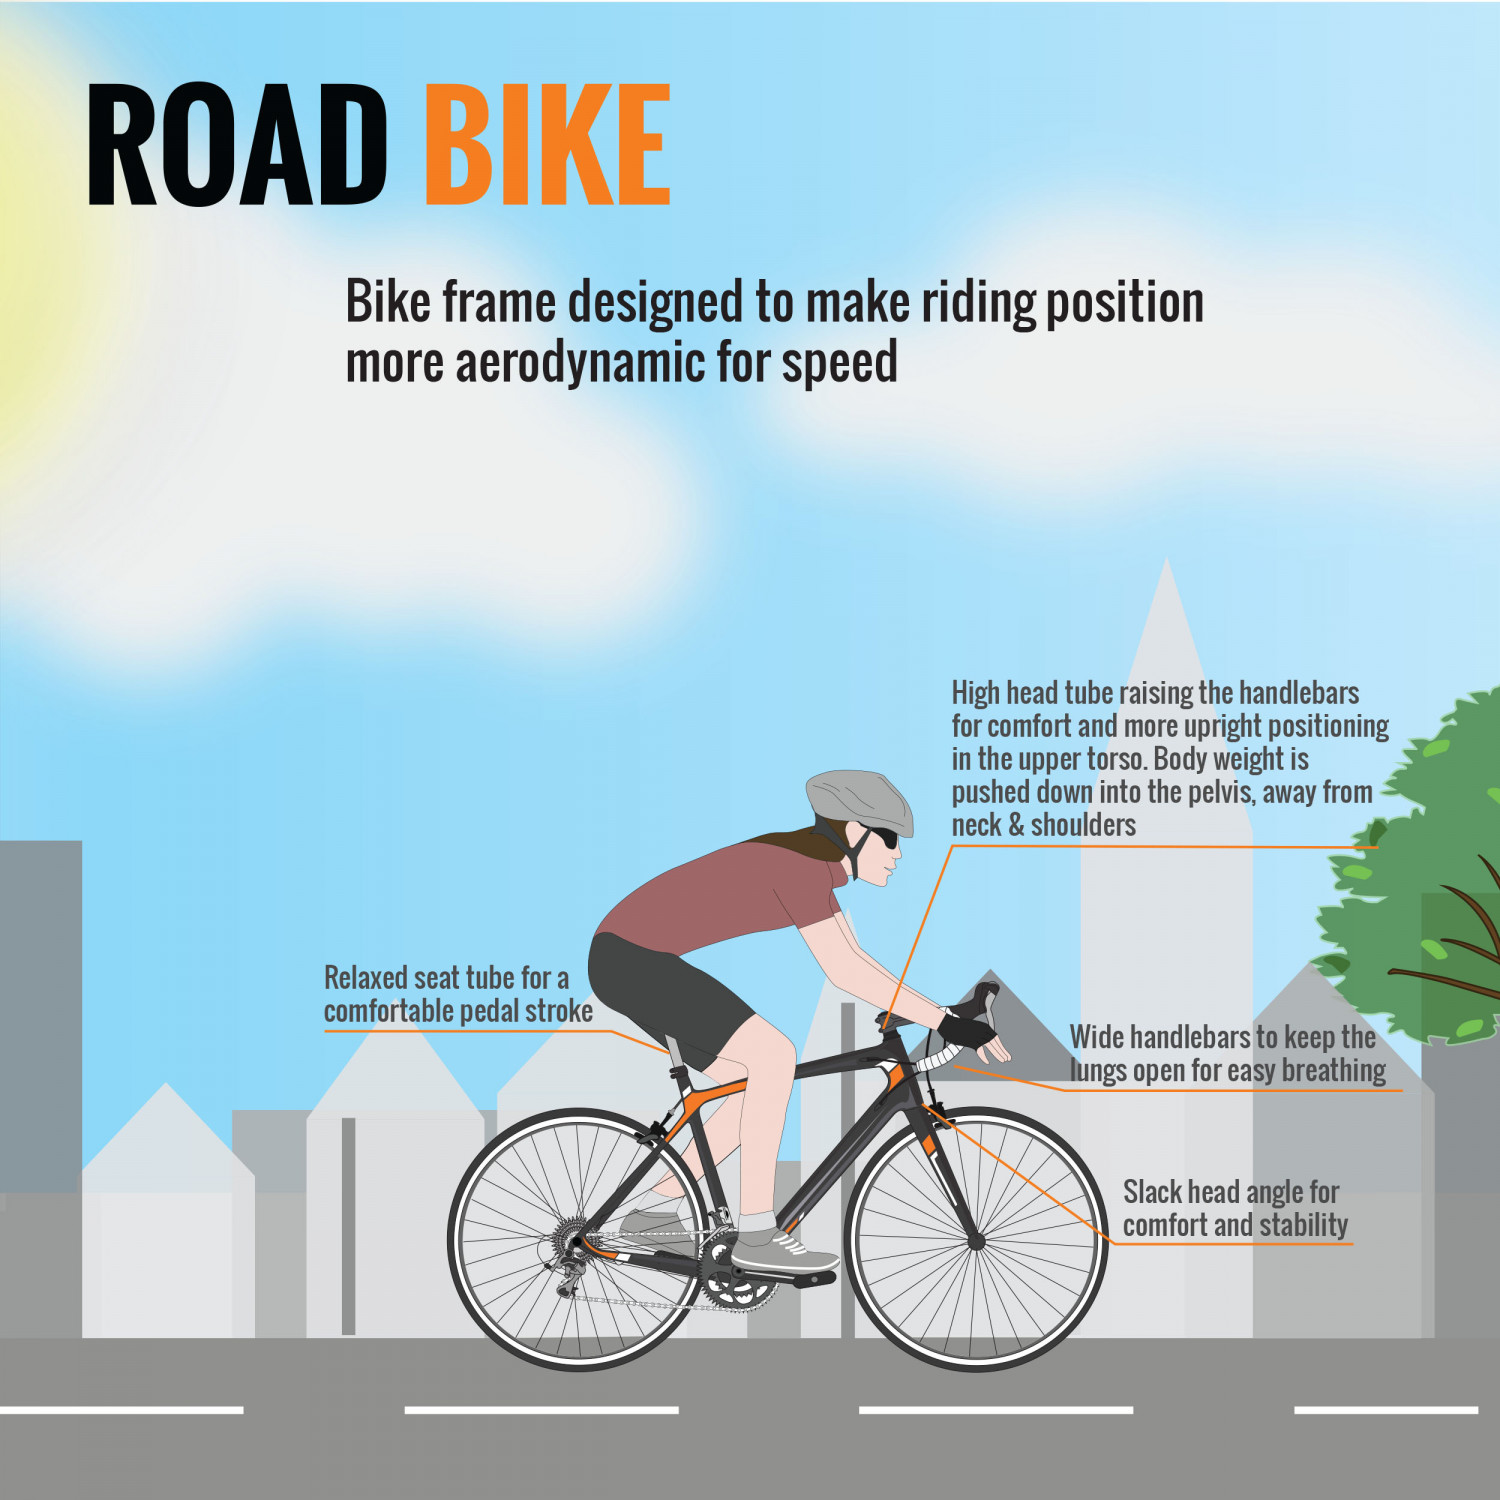 Anatomy of a Bicycle (Part II) - Road Bikes Infographic